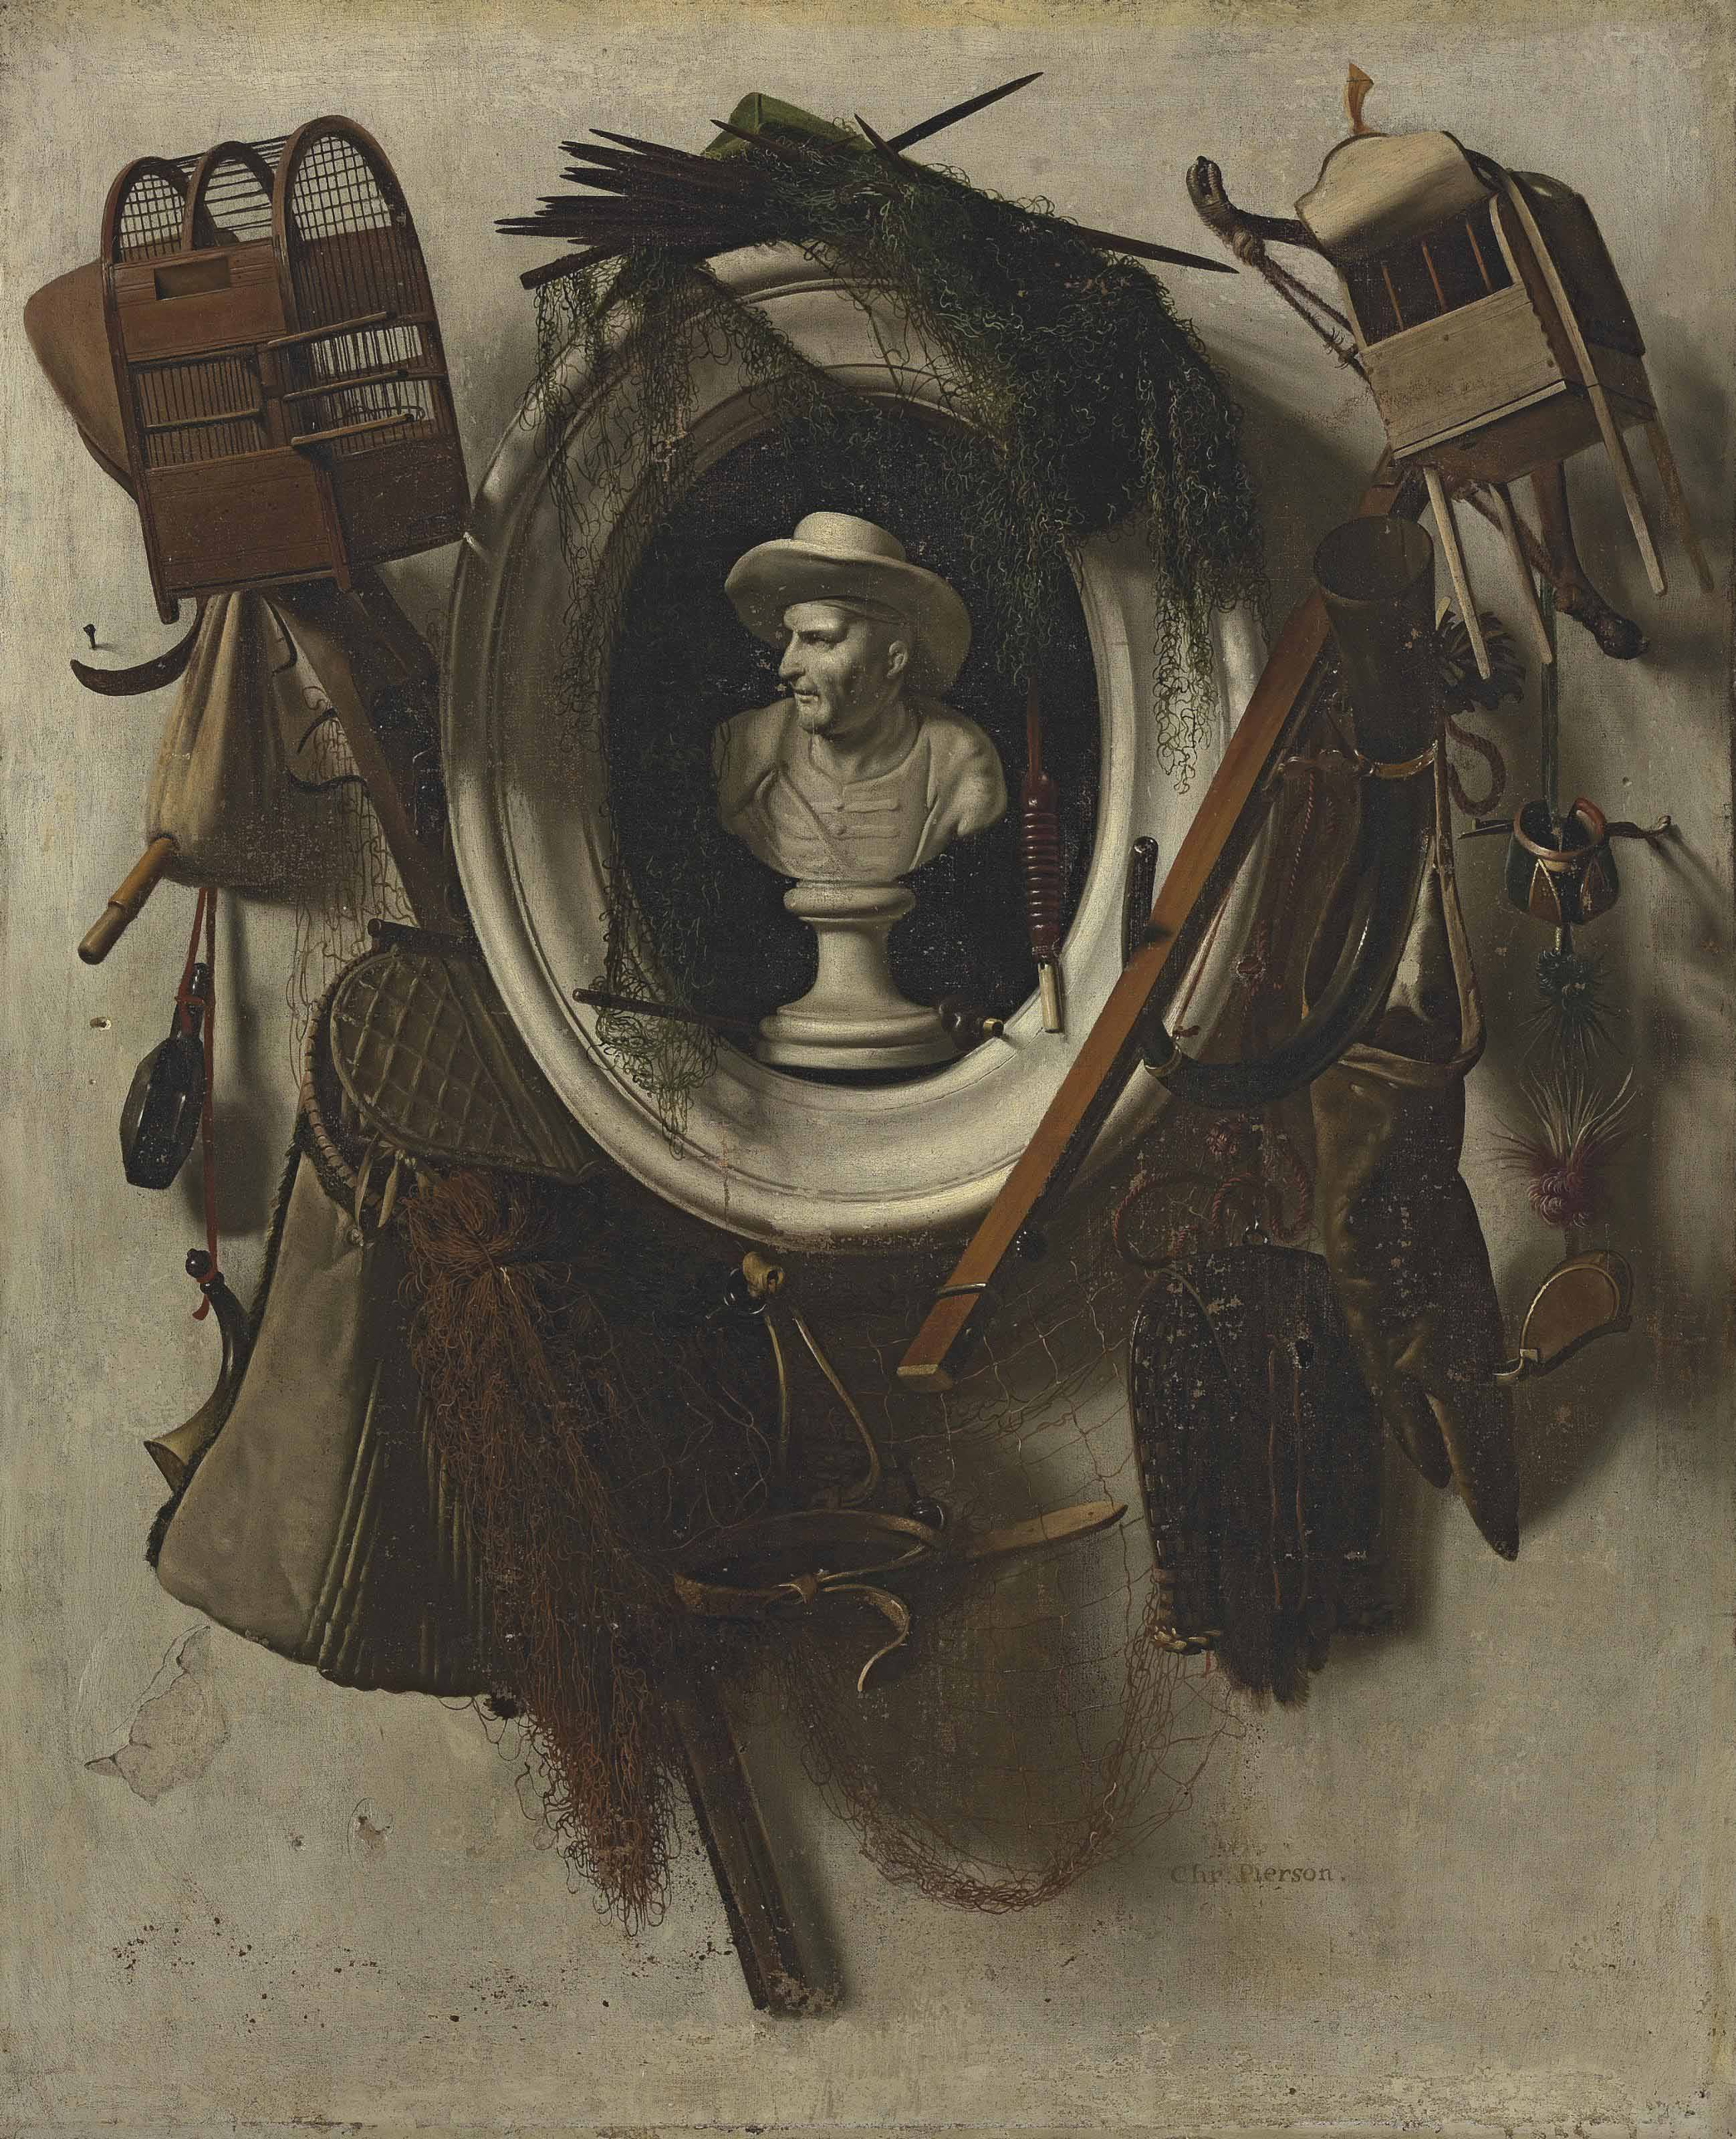 A trompe l'oeil of gaming equipment, with nets, falconry hoods, bird cages, a hunting horne and a glove, hanging on a wall, with a bust in a sculpted niche